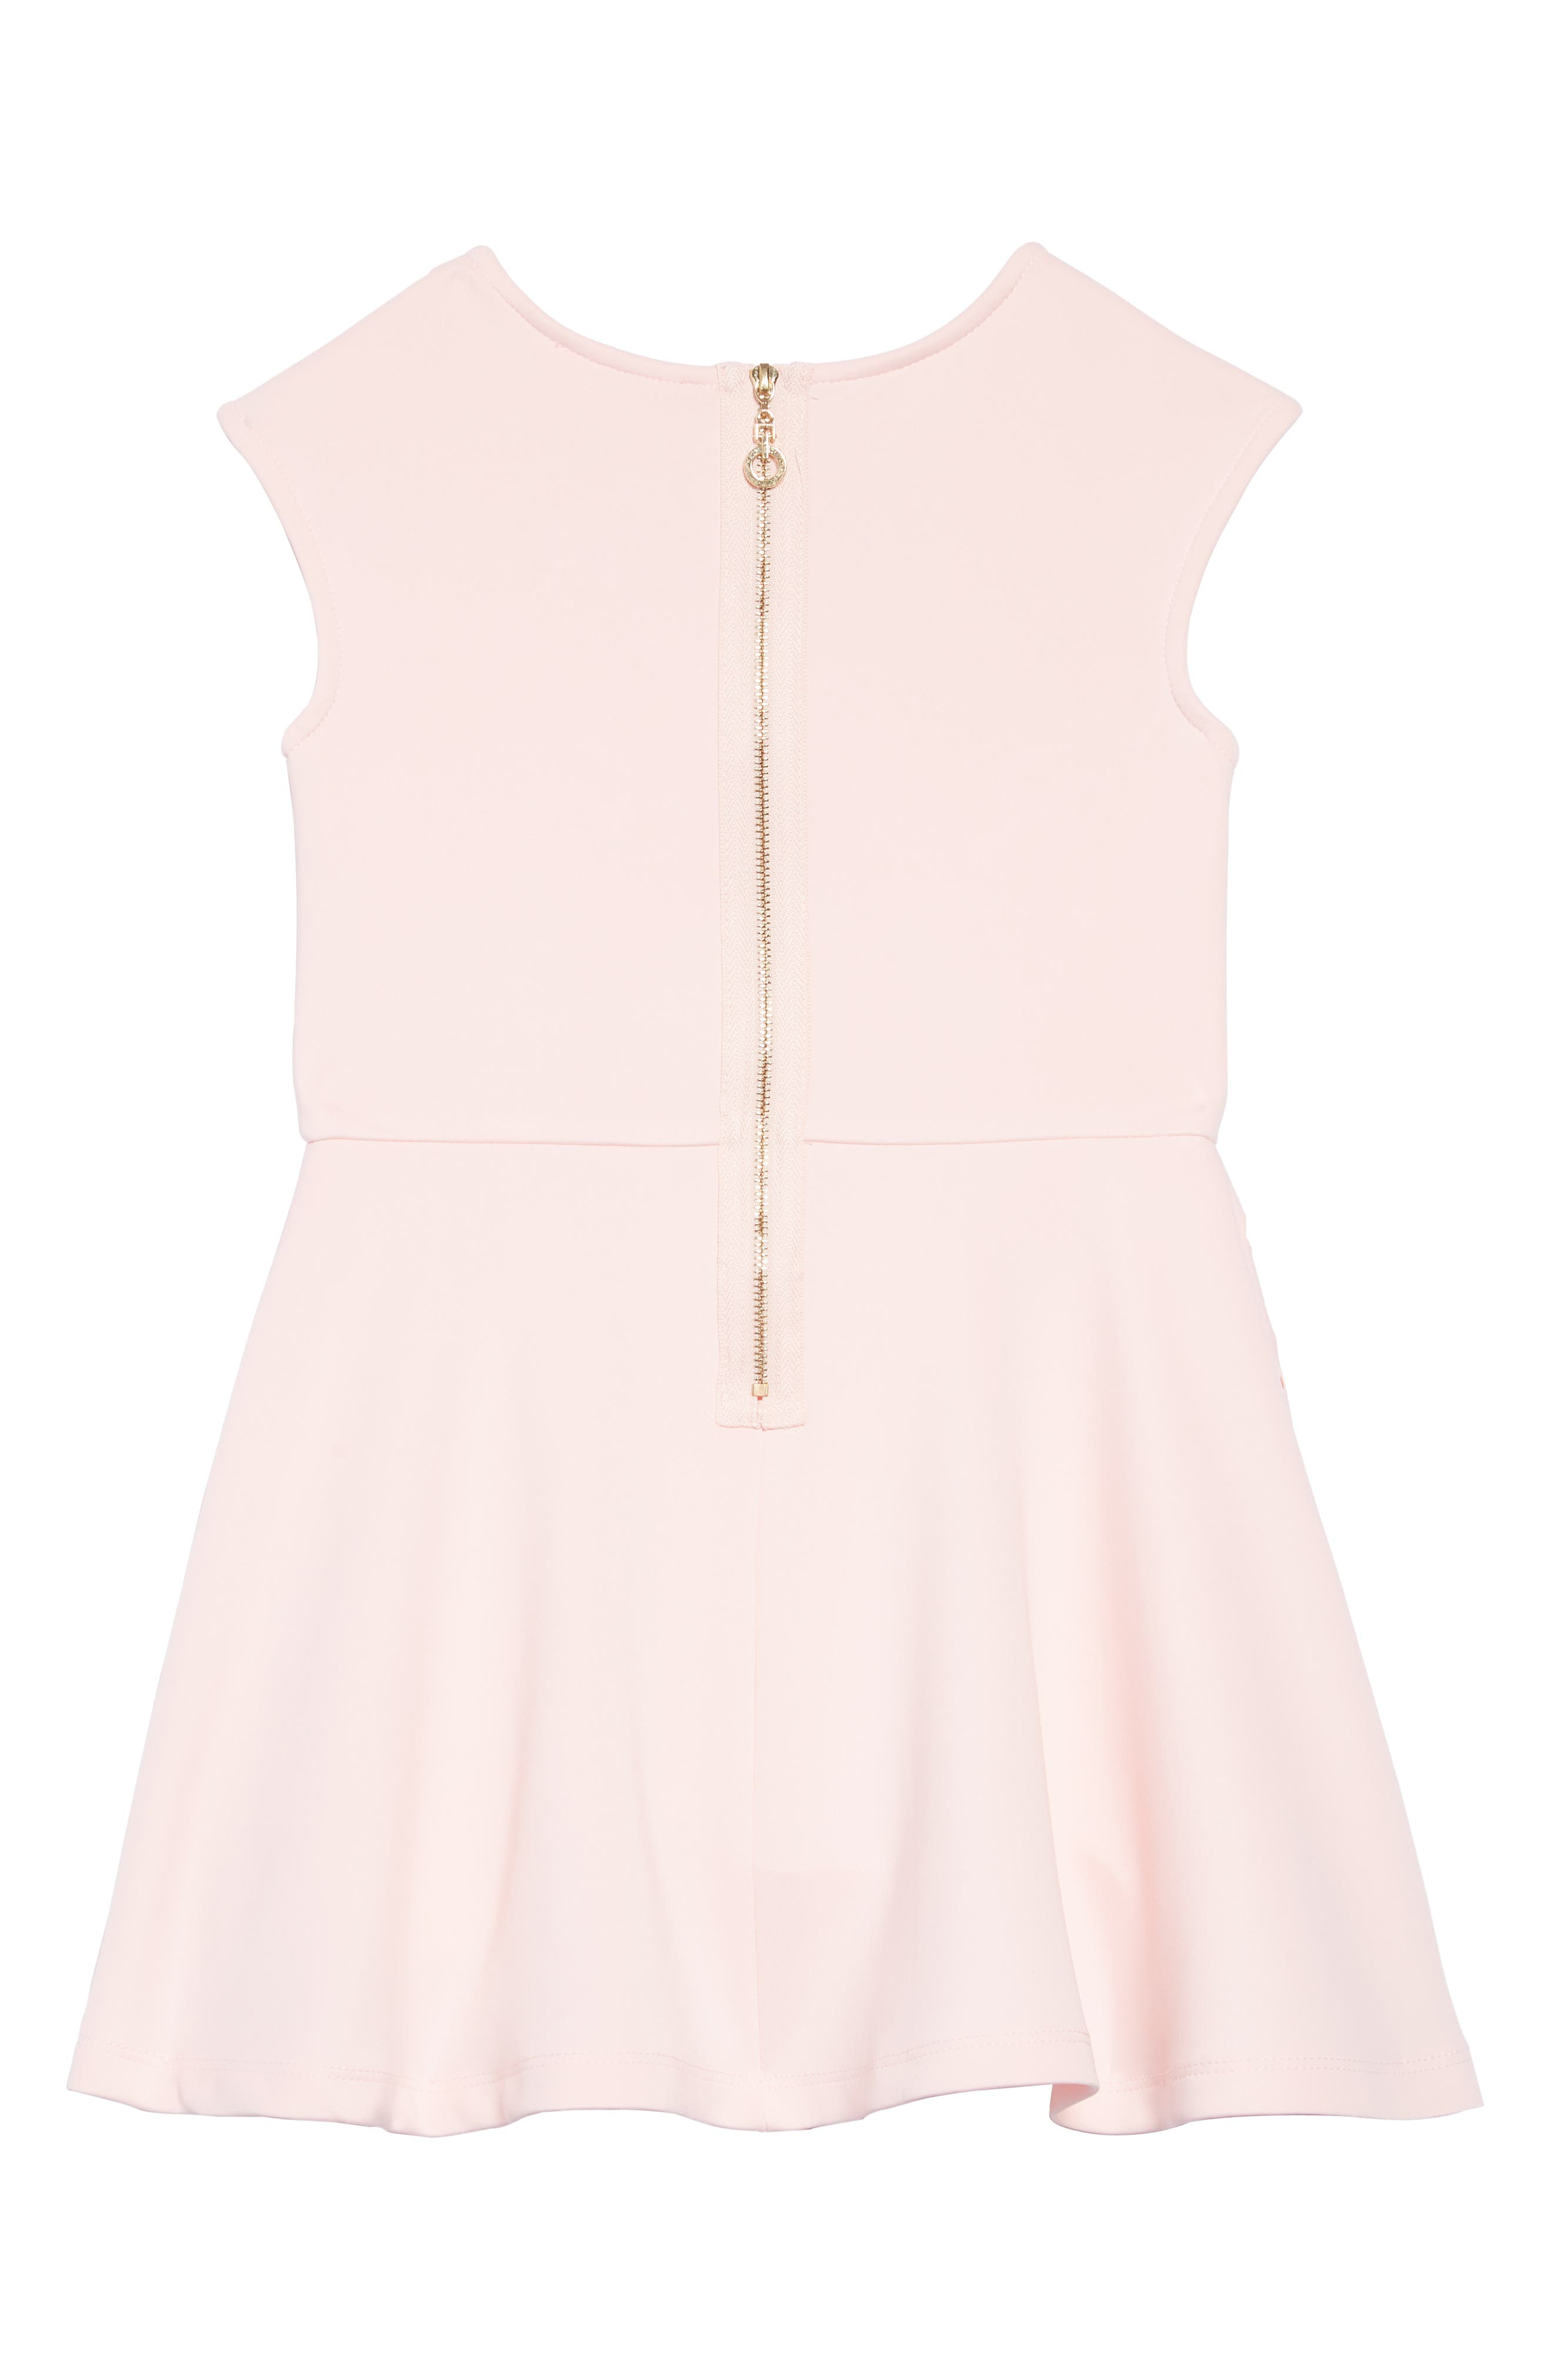 TRULY ME,                             Laser Cut Floral Fit & Flare Dress,                             Alternate thumbnail 2, color,                             PINK-WHITE